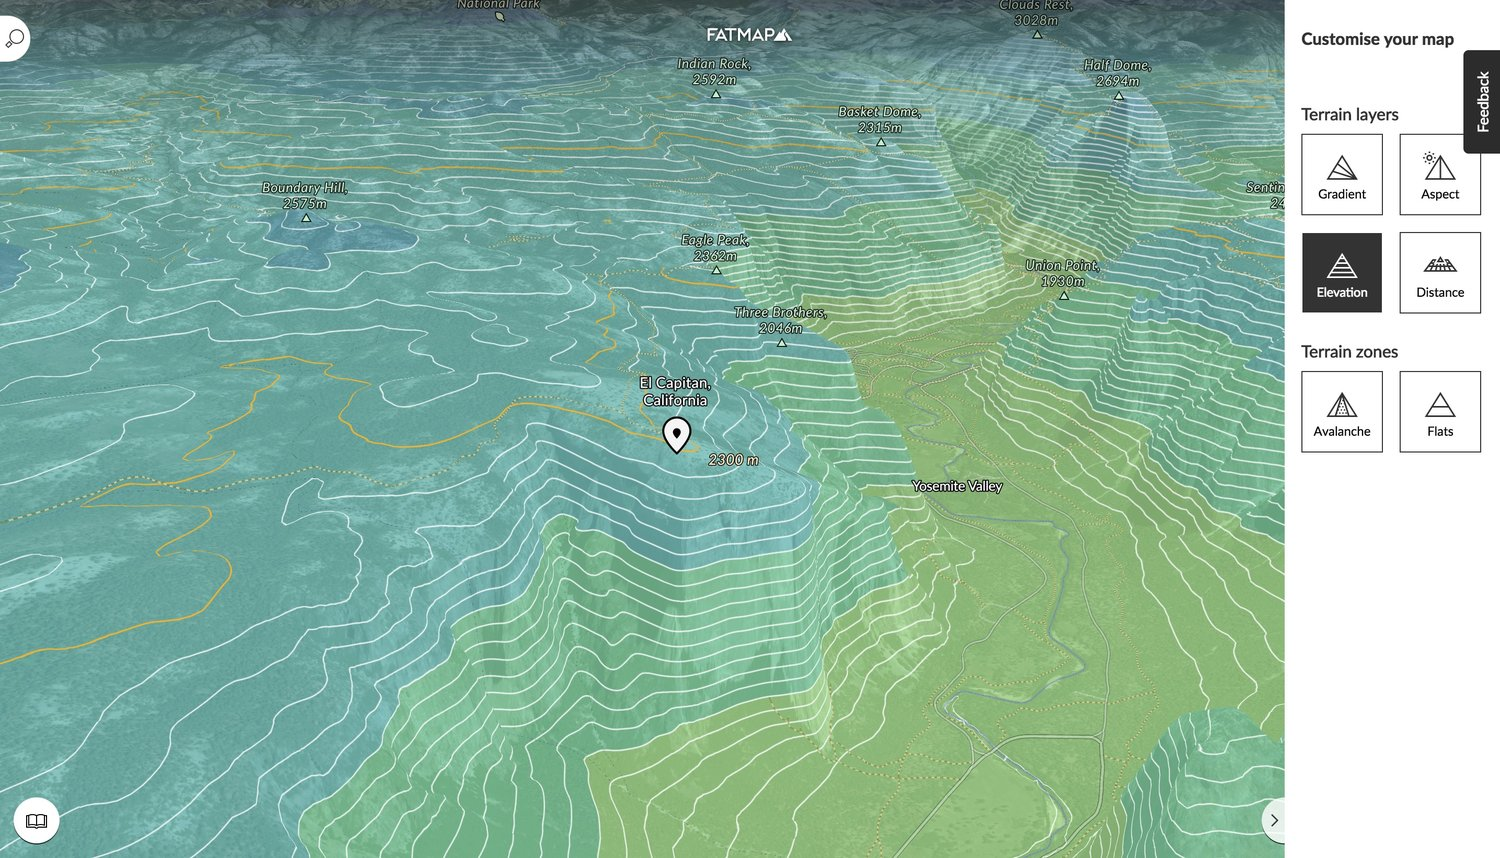 Fatmap-Terrain-Tools-Elevation.JPG